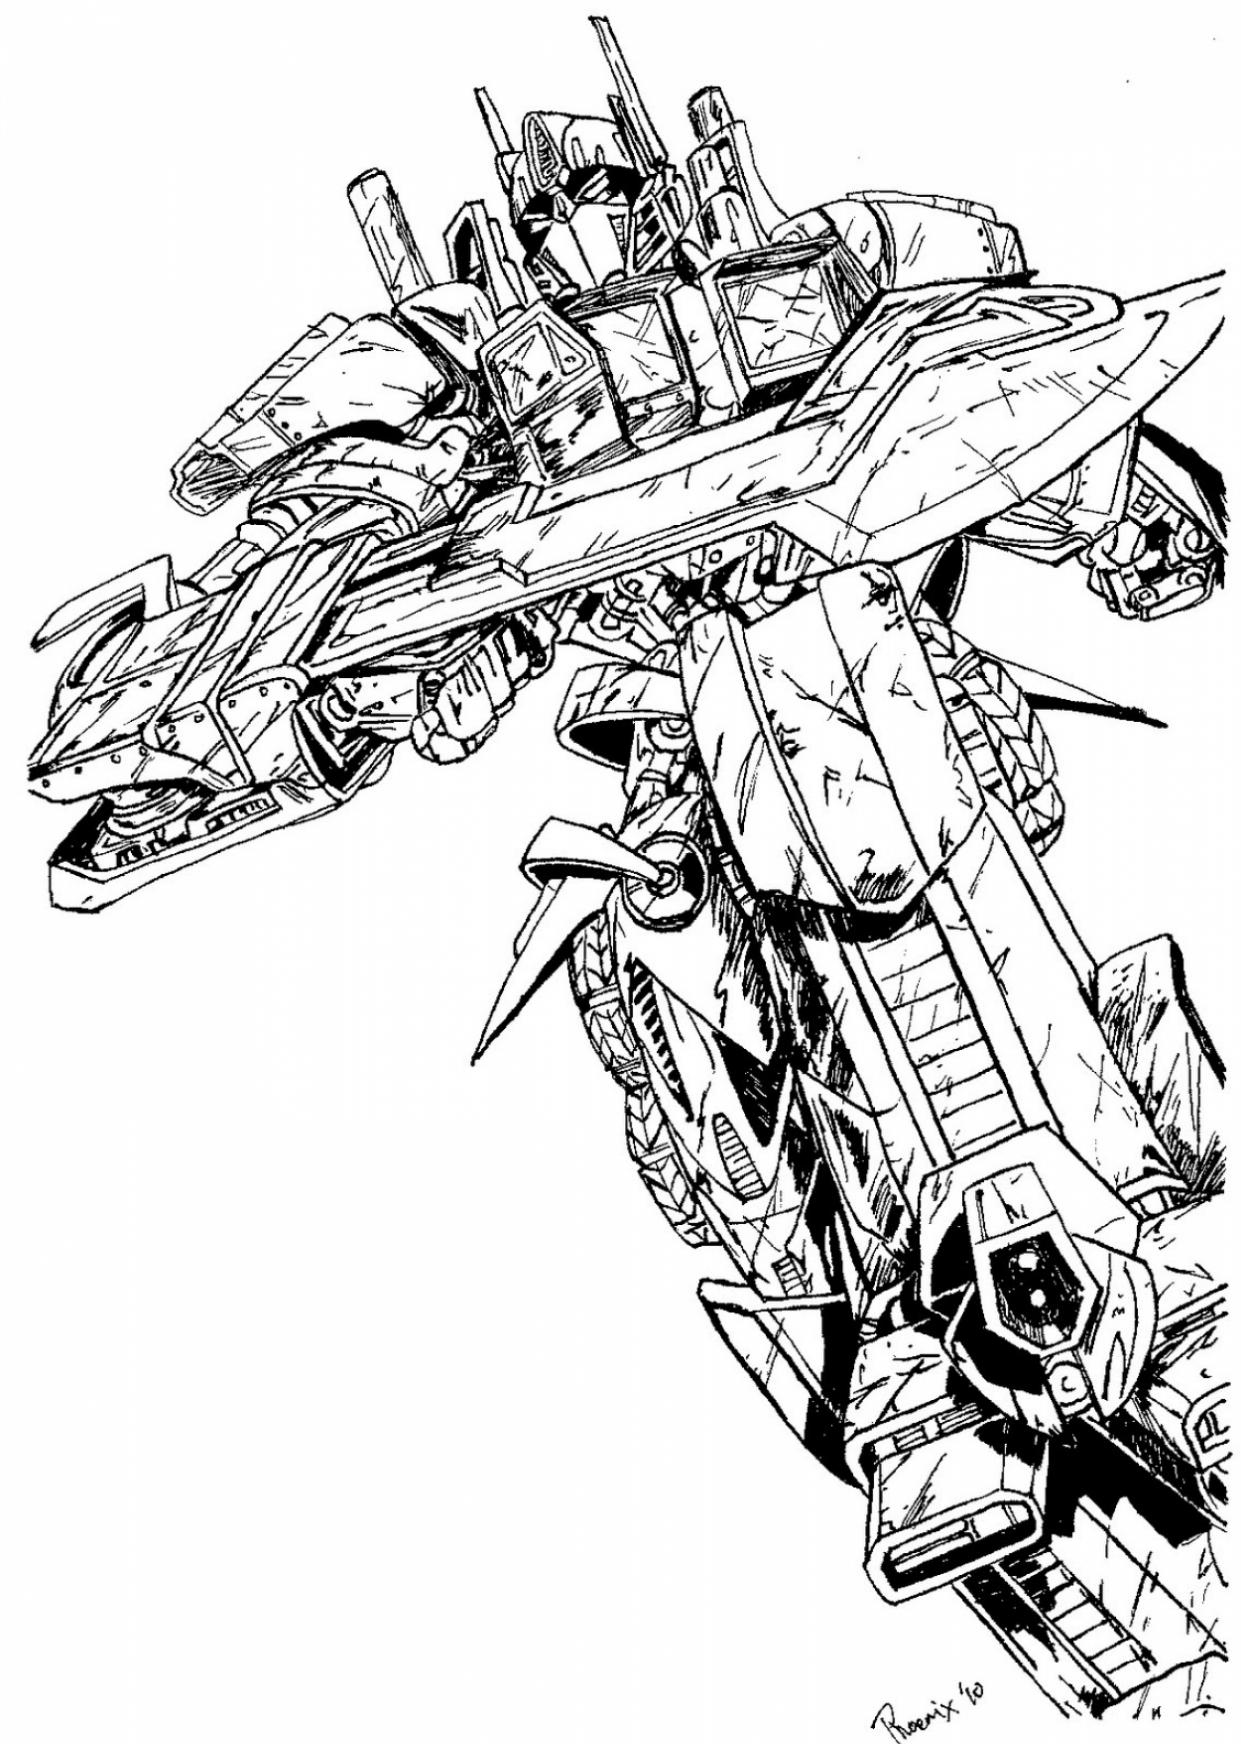 optimus prime printable coloring pages transformer optimus prime coloring pages coloring home prime printable optimus coloring pages